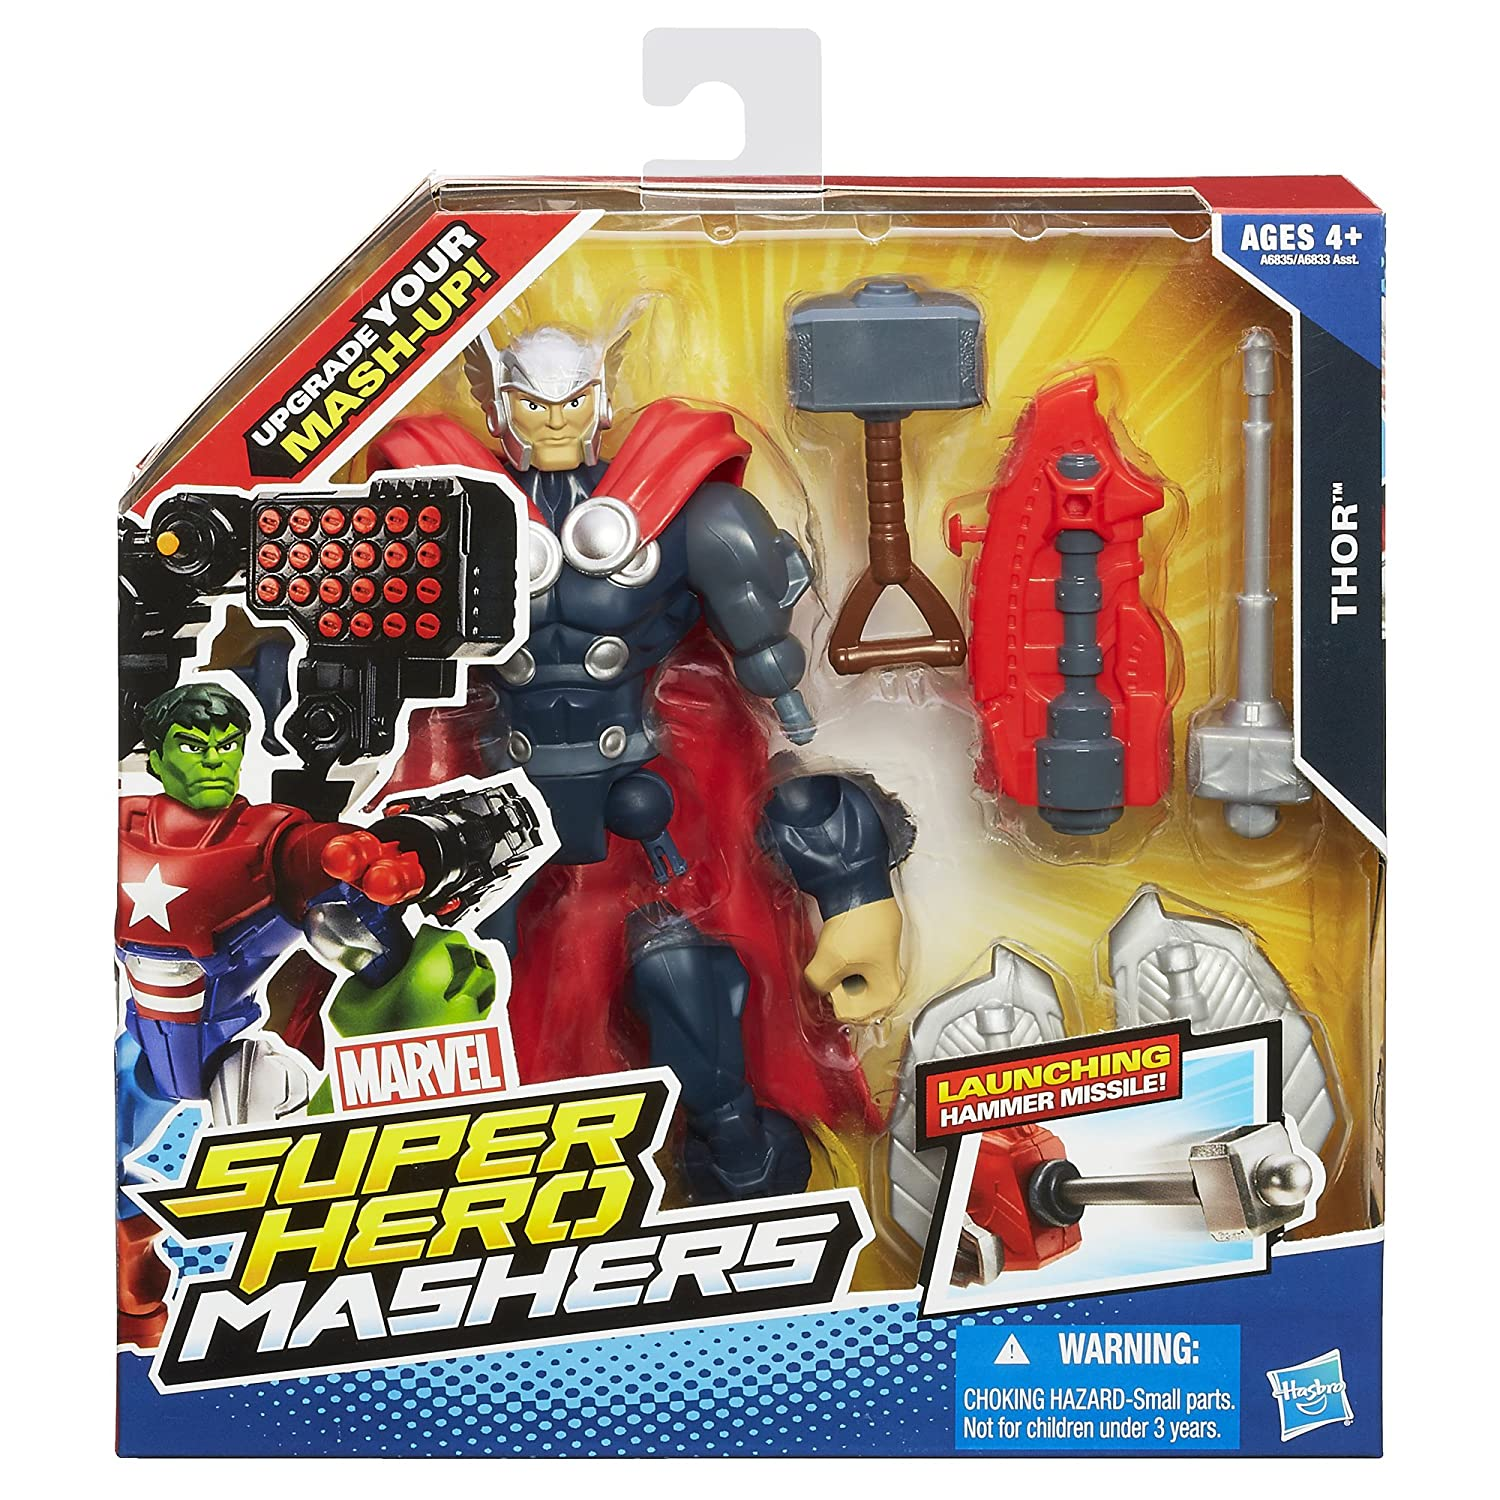 Amazoncom Marvel Super Hero Mashers Thor Figure Inches Toys - 18 then and now photos of your favourite on screen superheroes